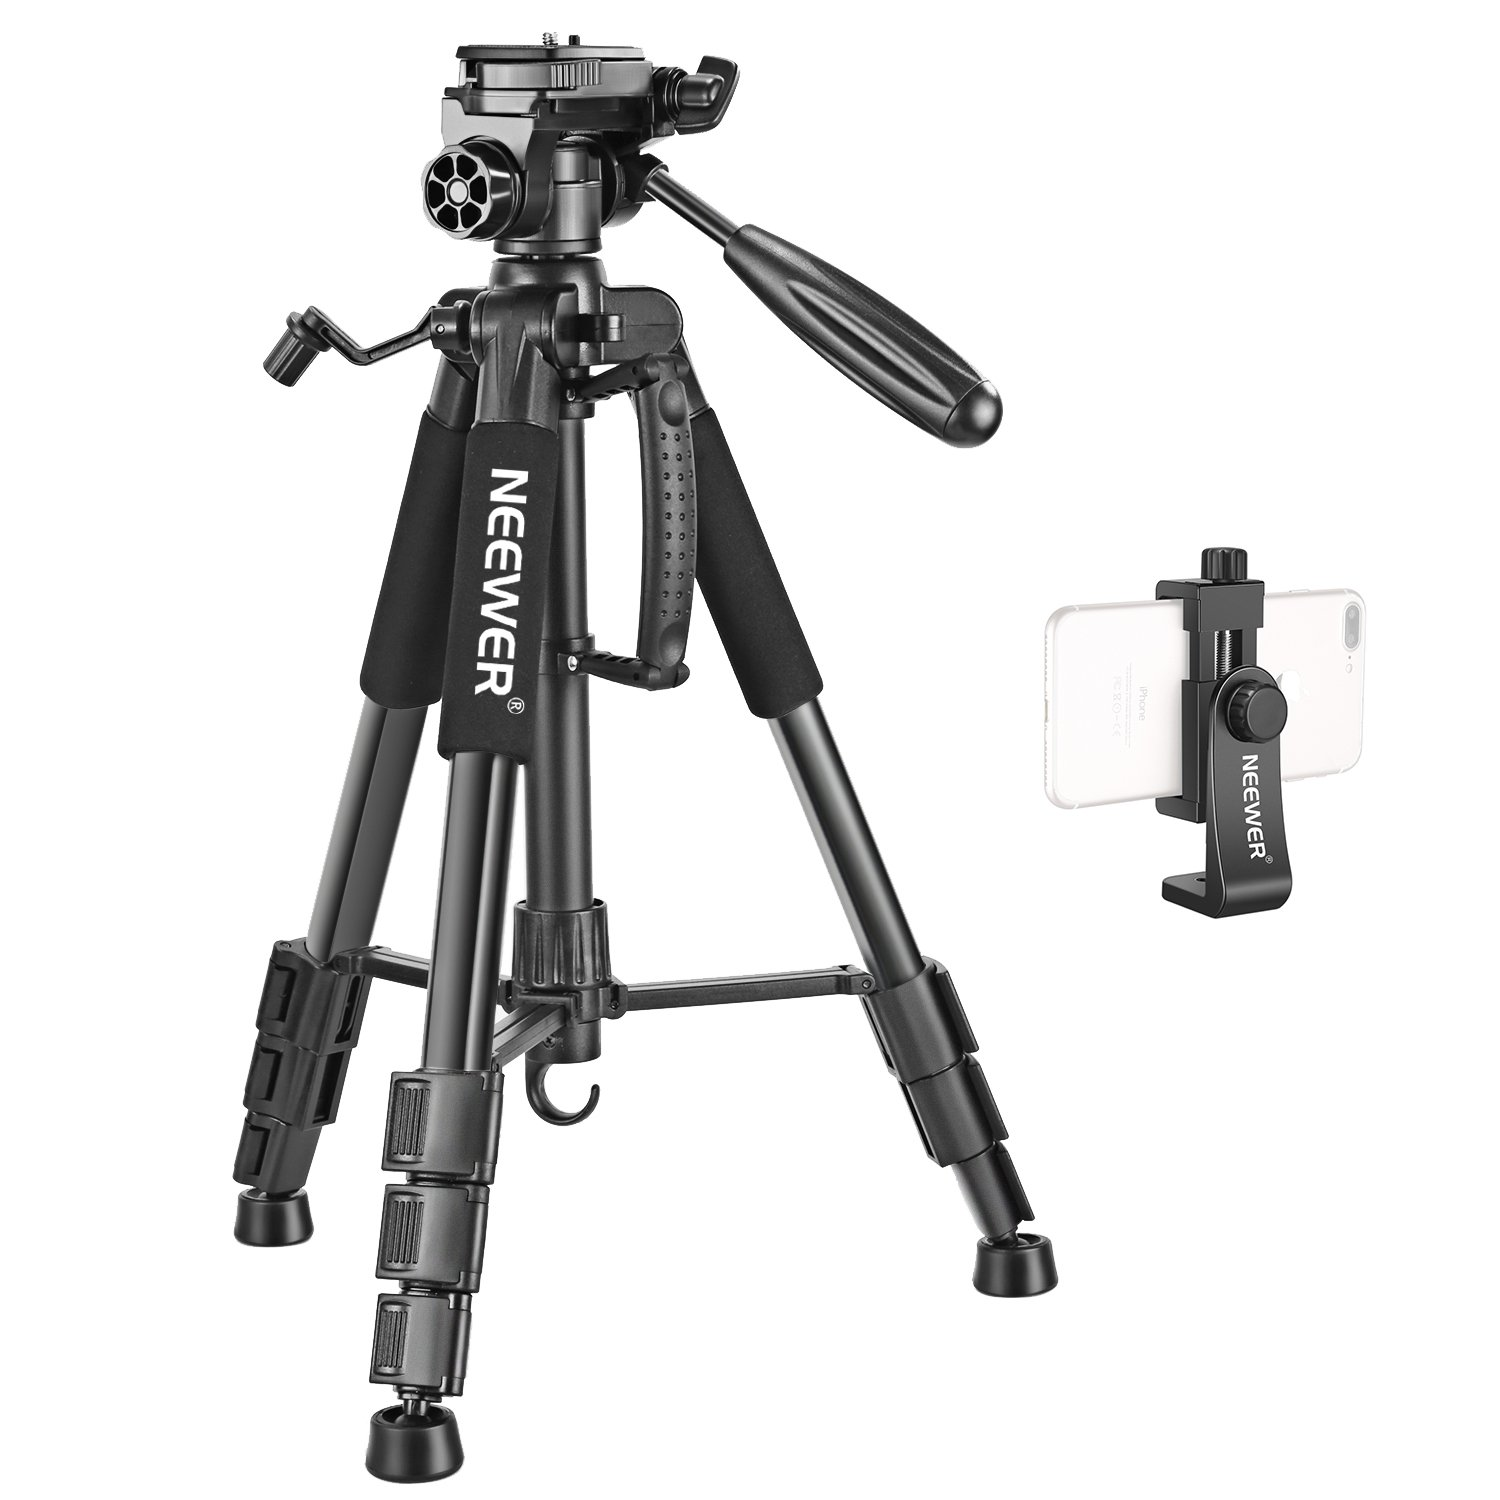 Neewer Travel Aluminum Camera Tripod 56 inches with 3-Way Swivel Pan Head and Smartphone Holder, Compatible with Canon Nikon DSLR Camera, DV Video Camcorder, iPhone and Android Smartphone (Black)